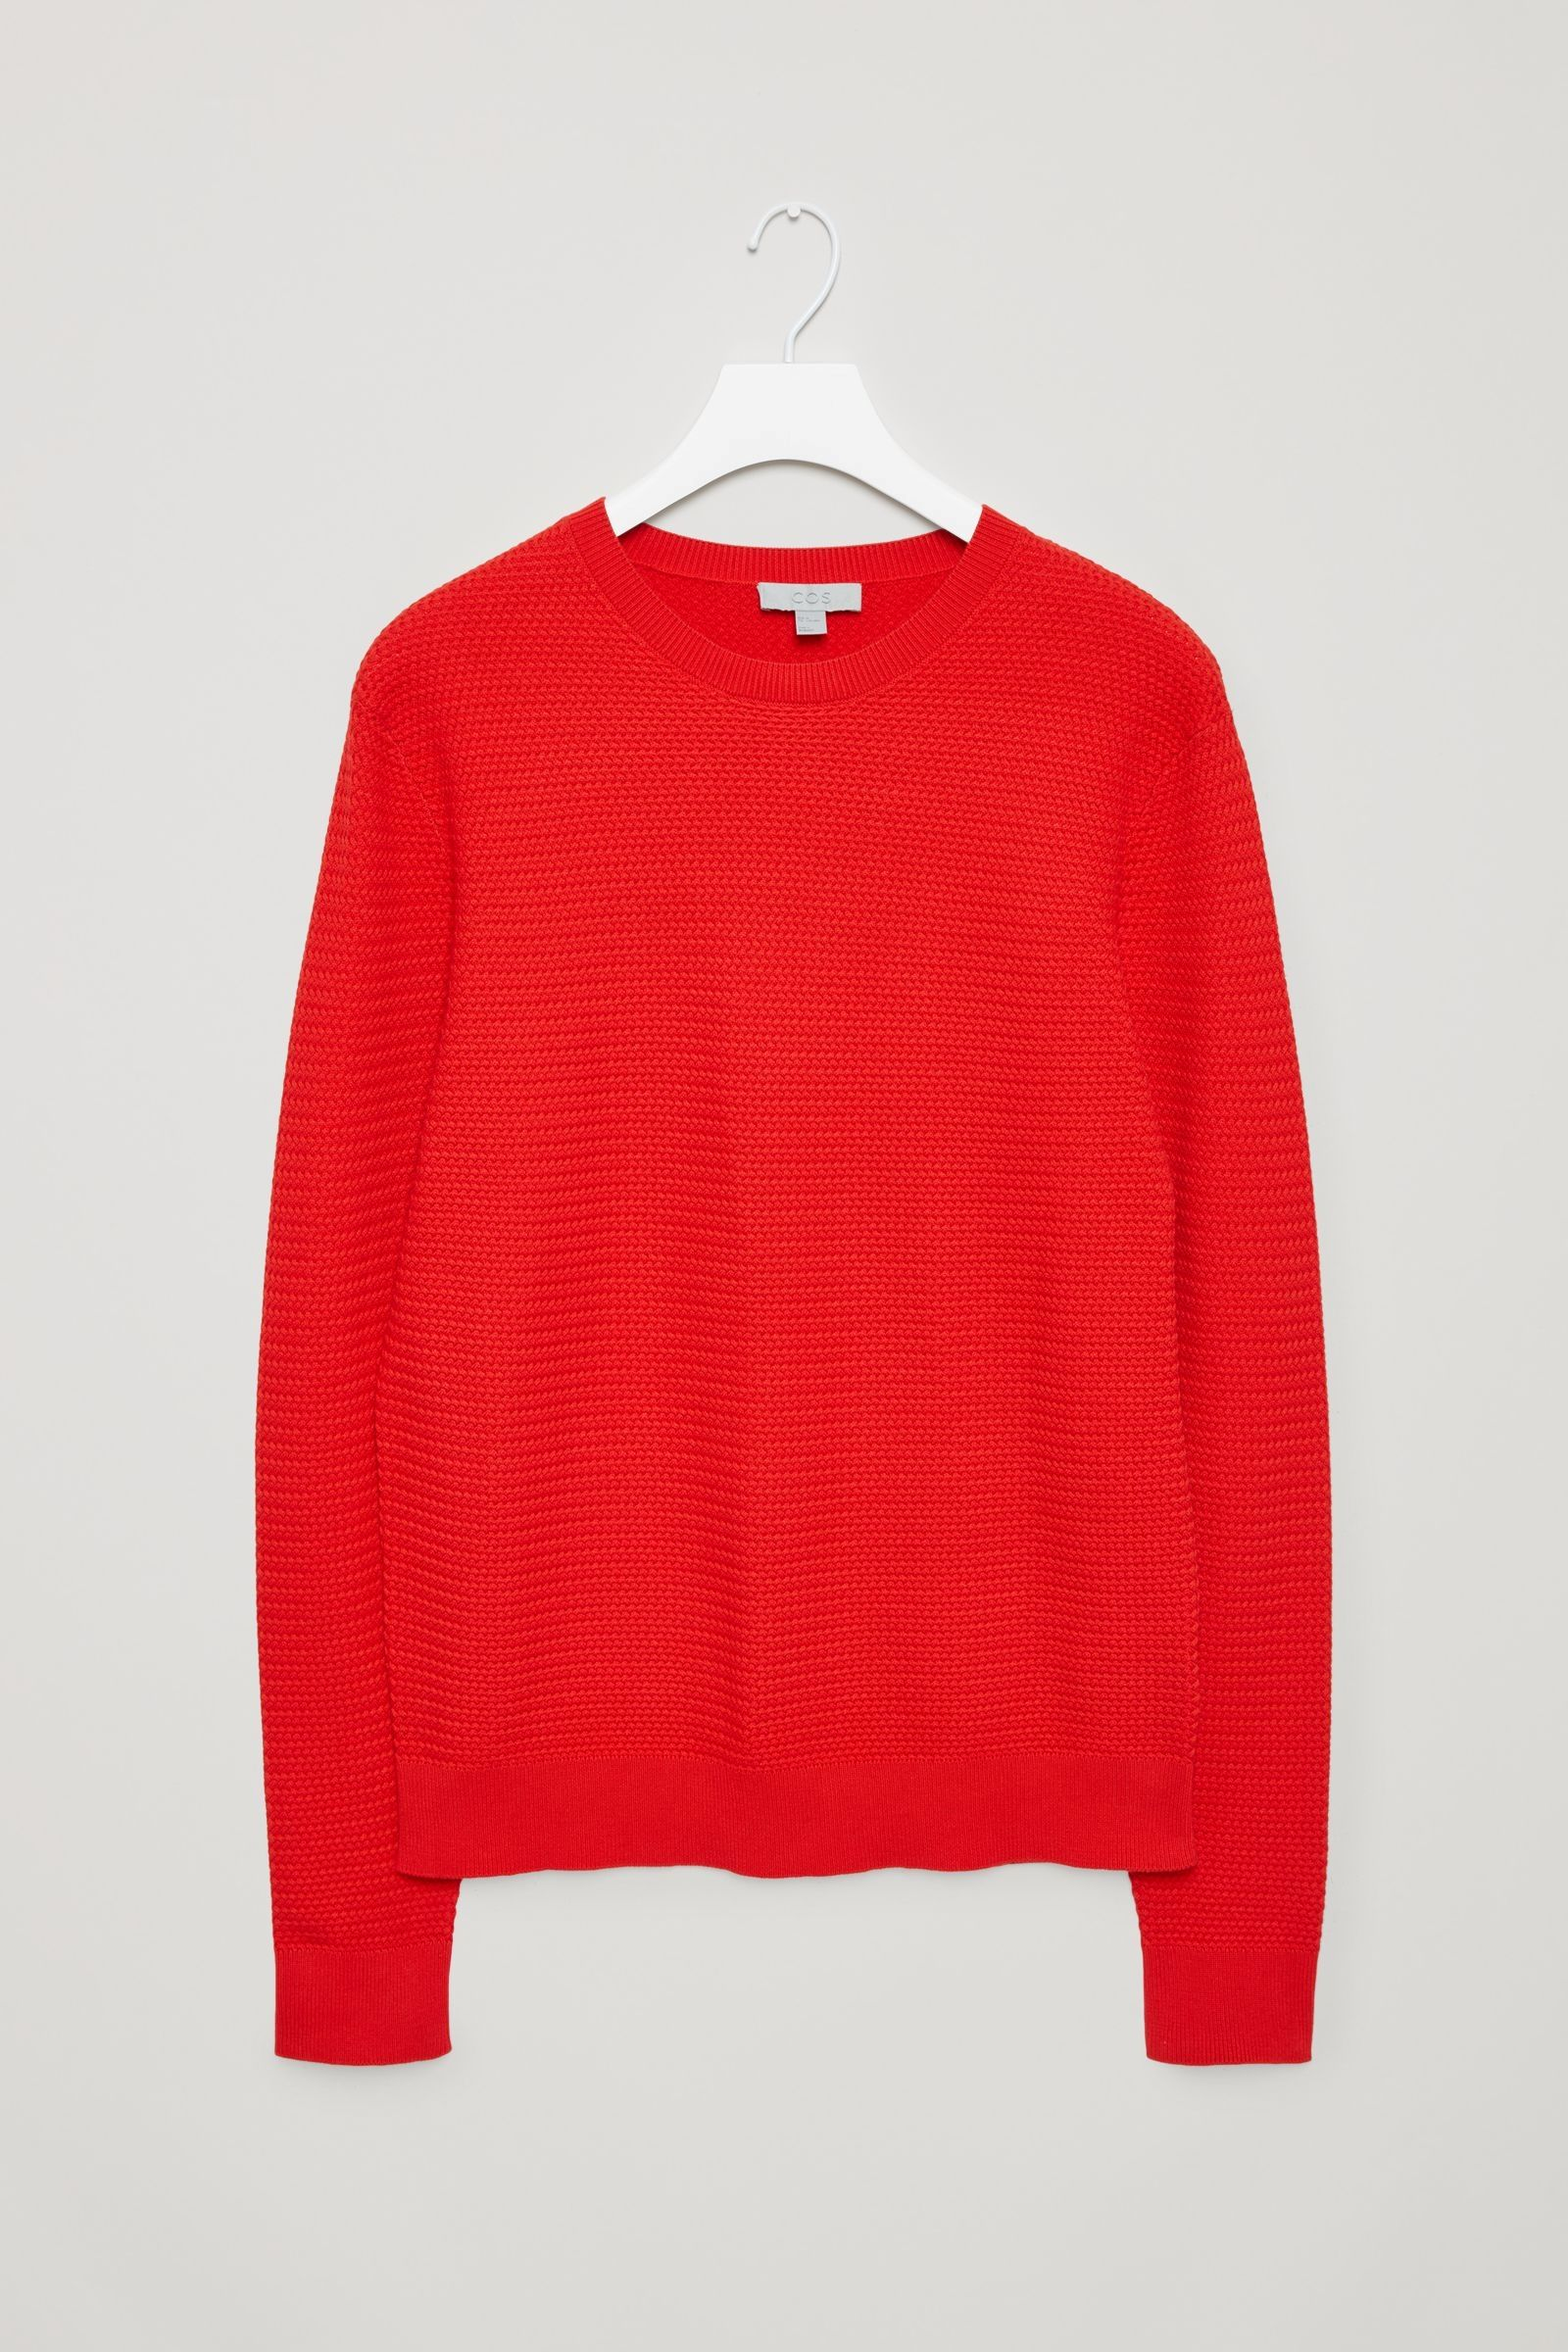 COS image 5 of Structured knit jumper in Signal Red